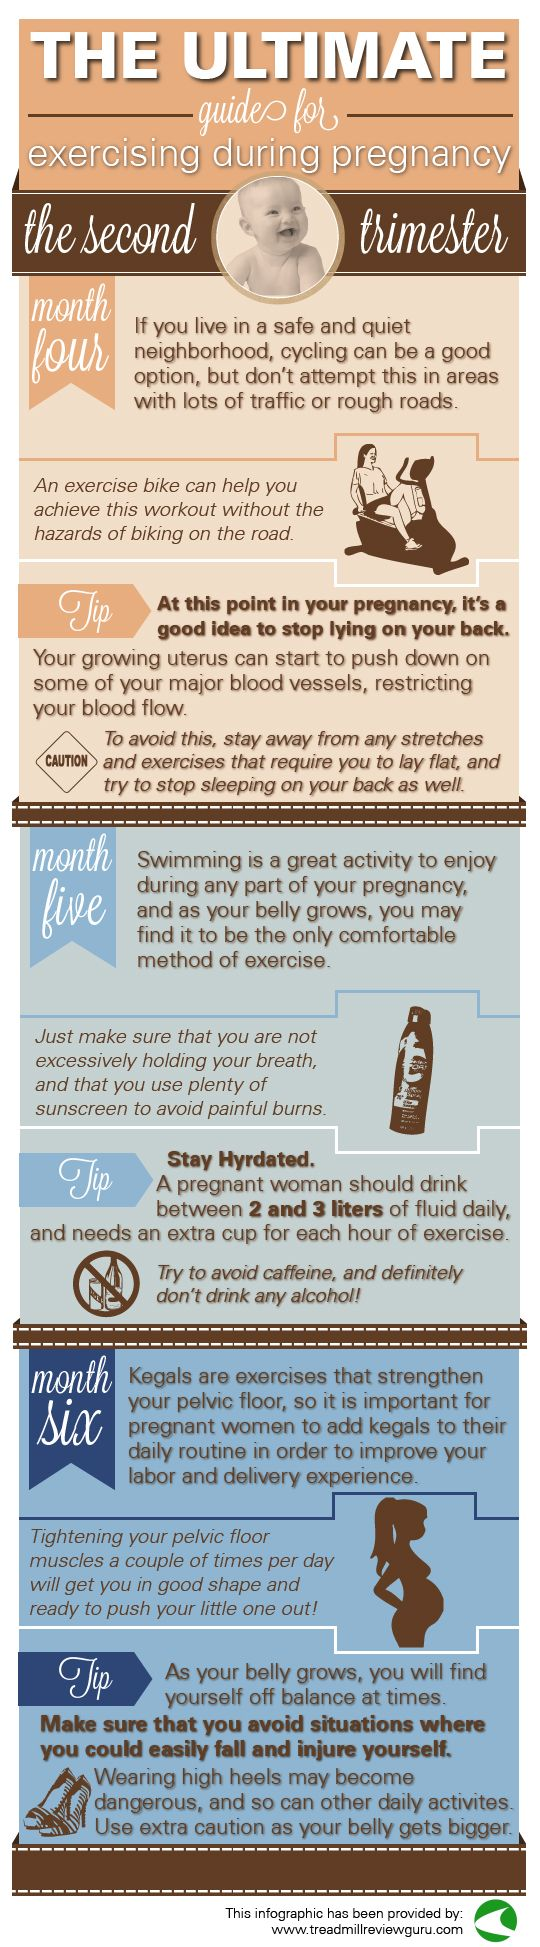 second trimester exercise guide